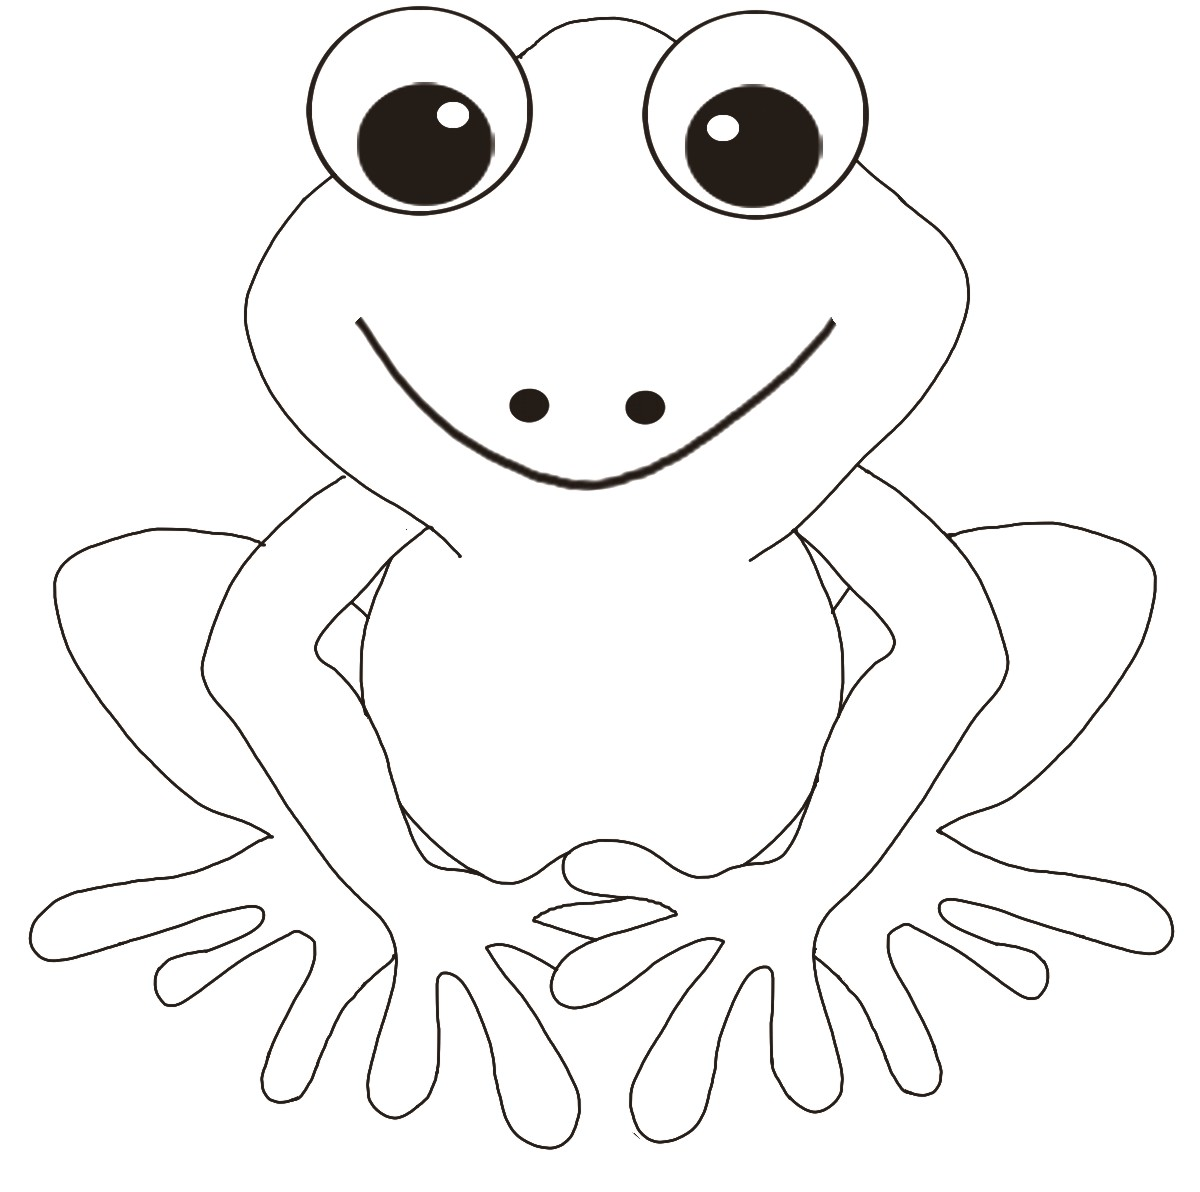 coloring pages frog - photo#17